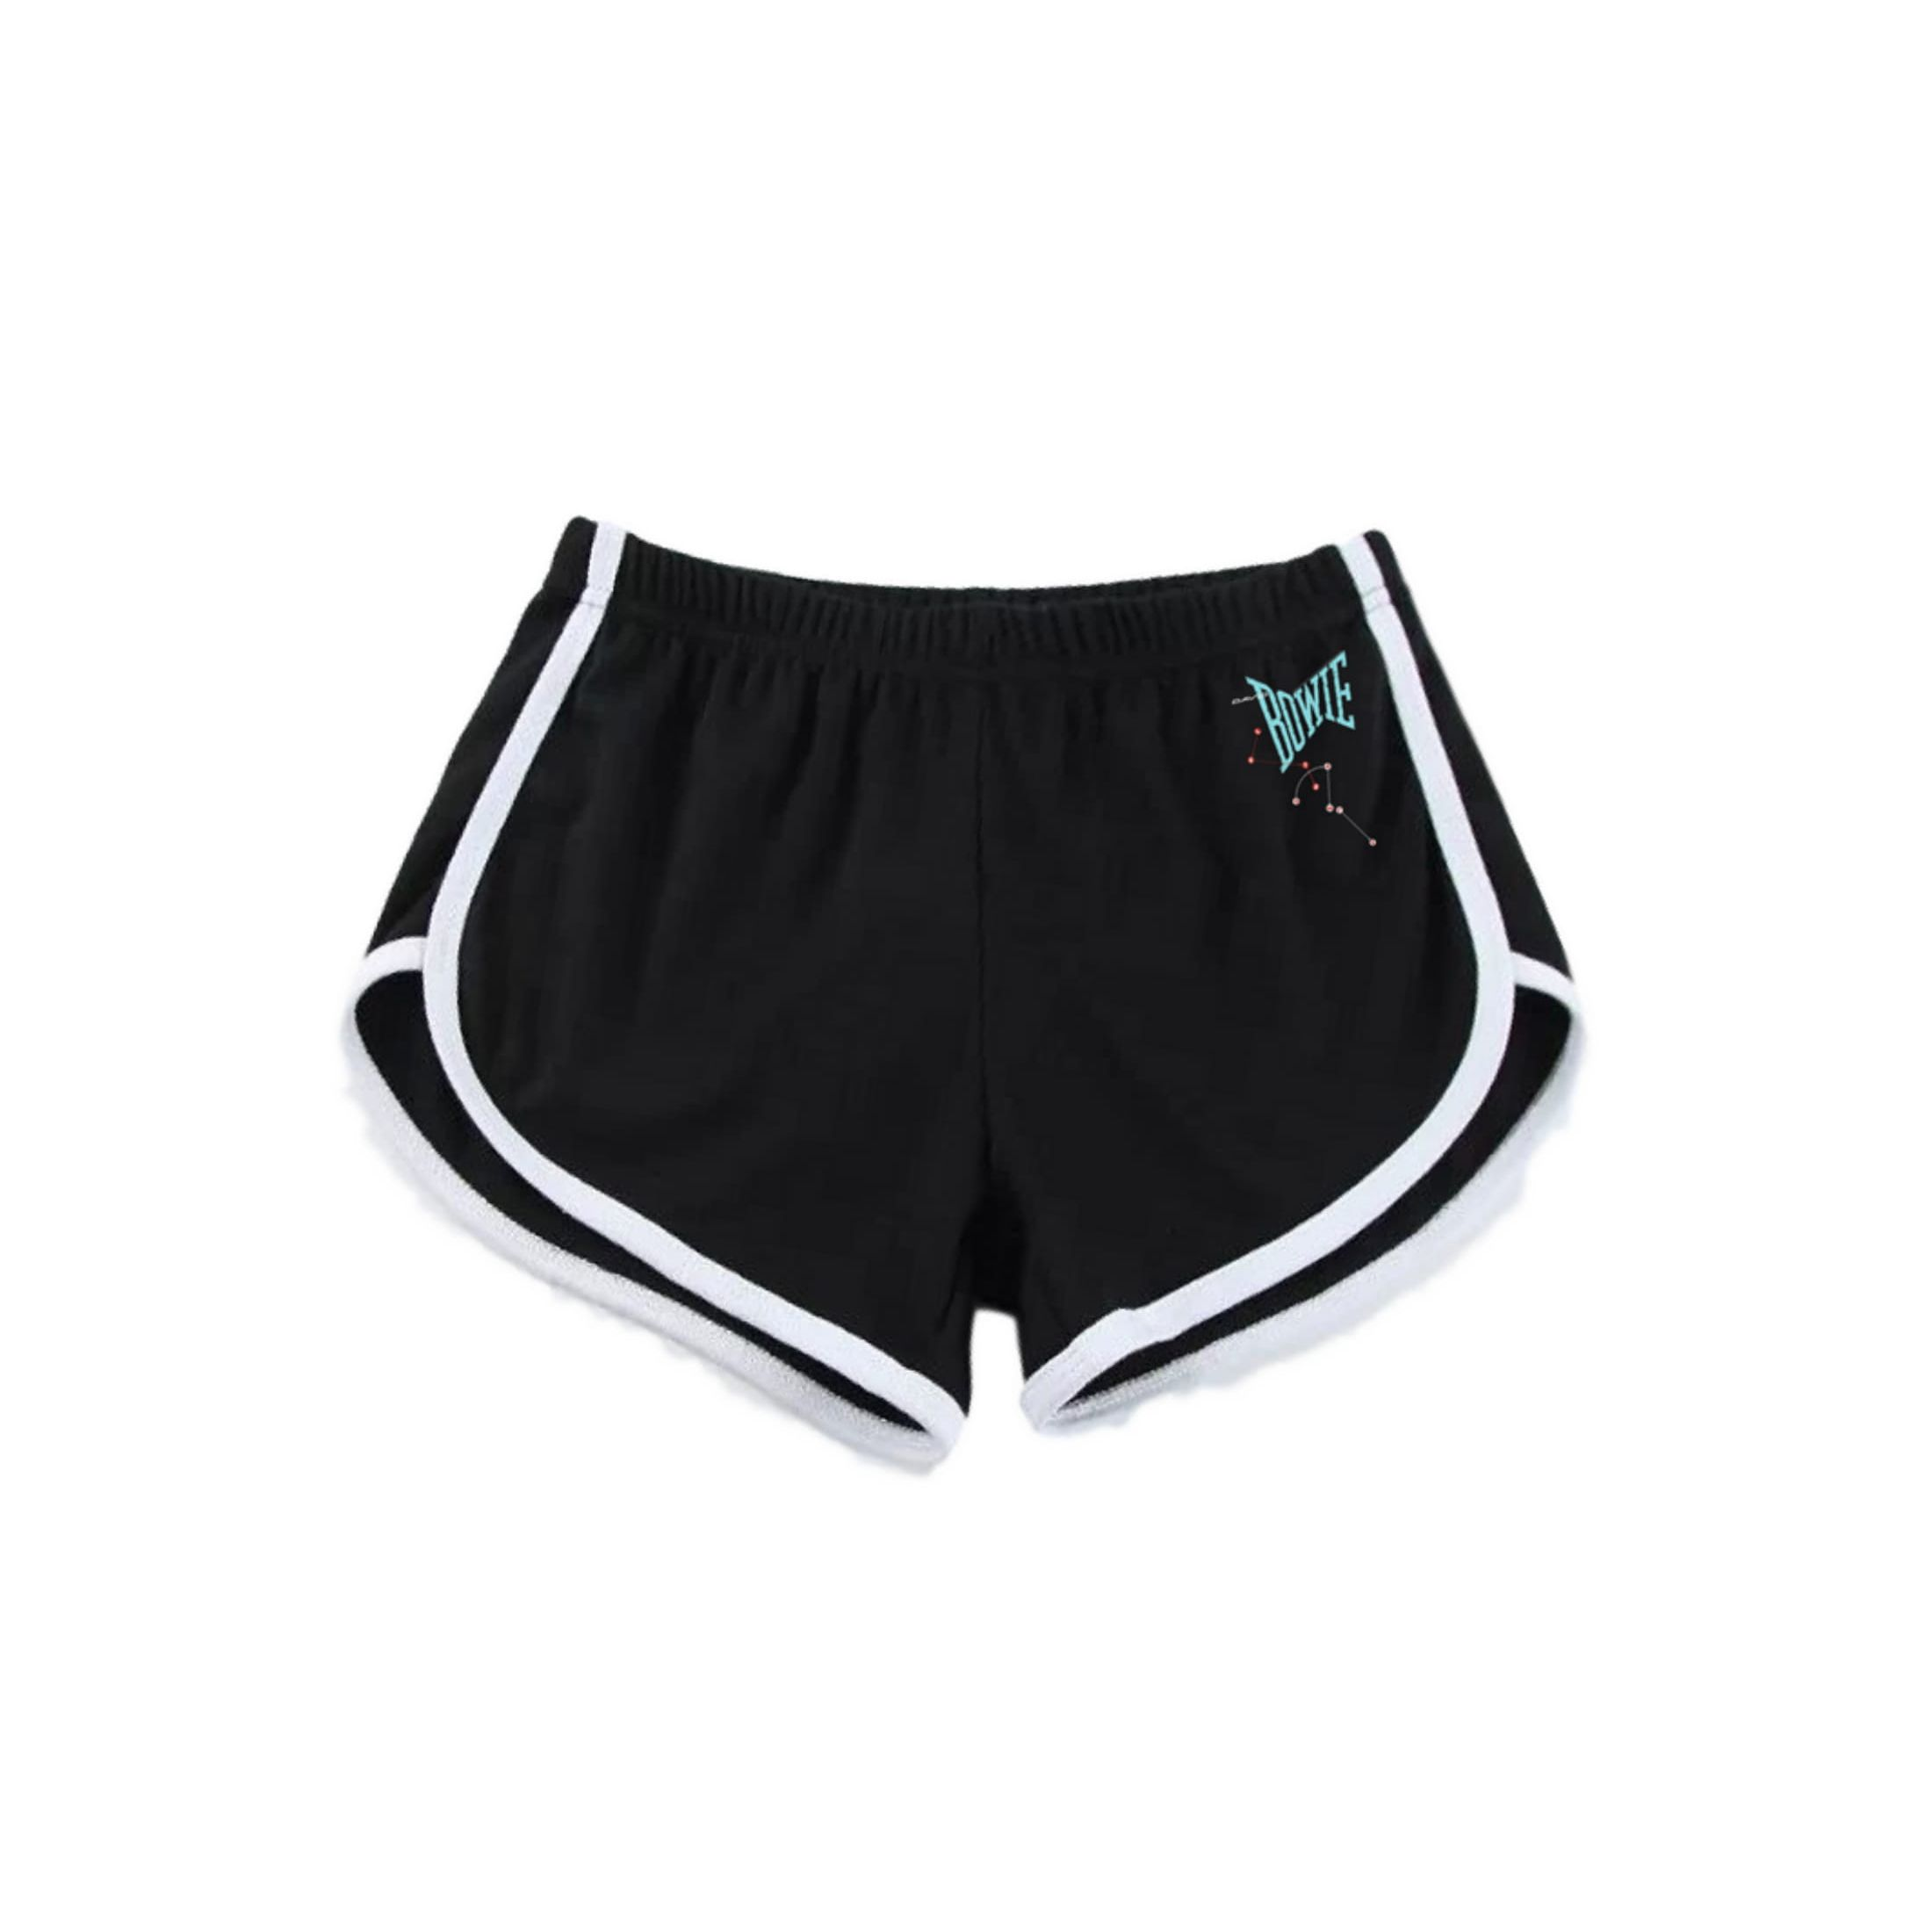 Let's Dance Women's Jogging Shorts